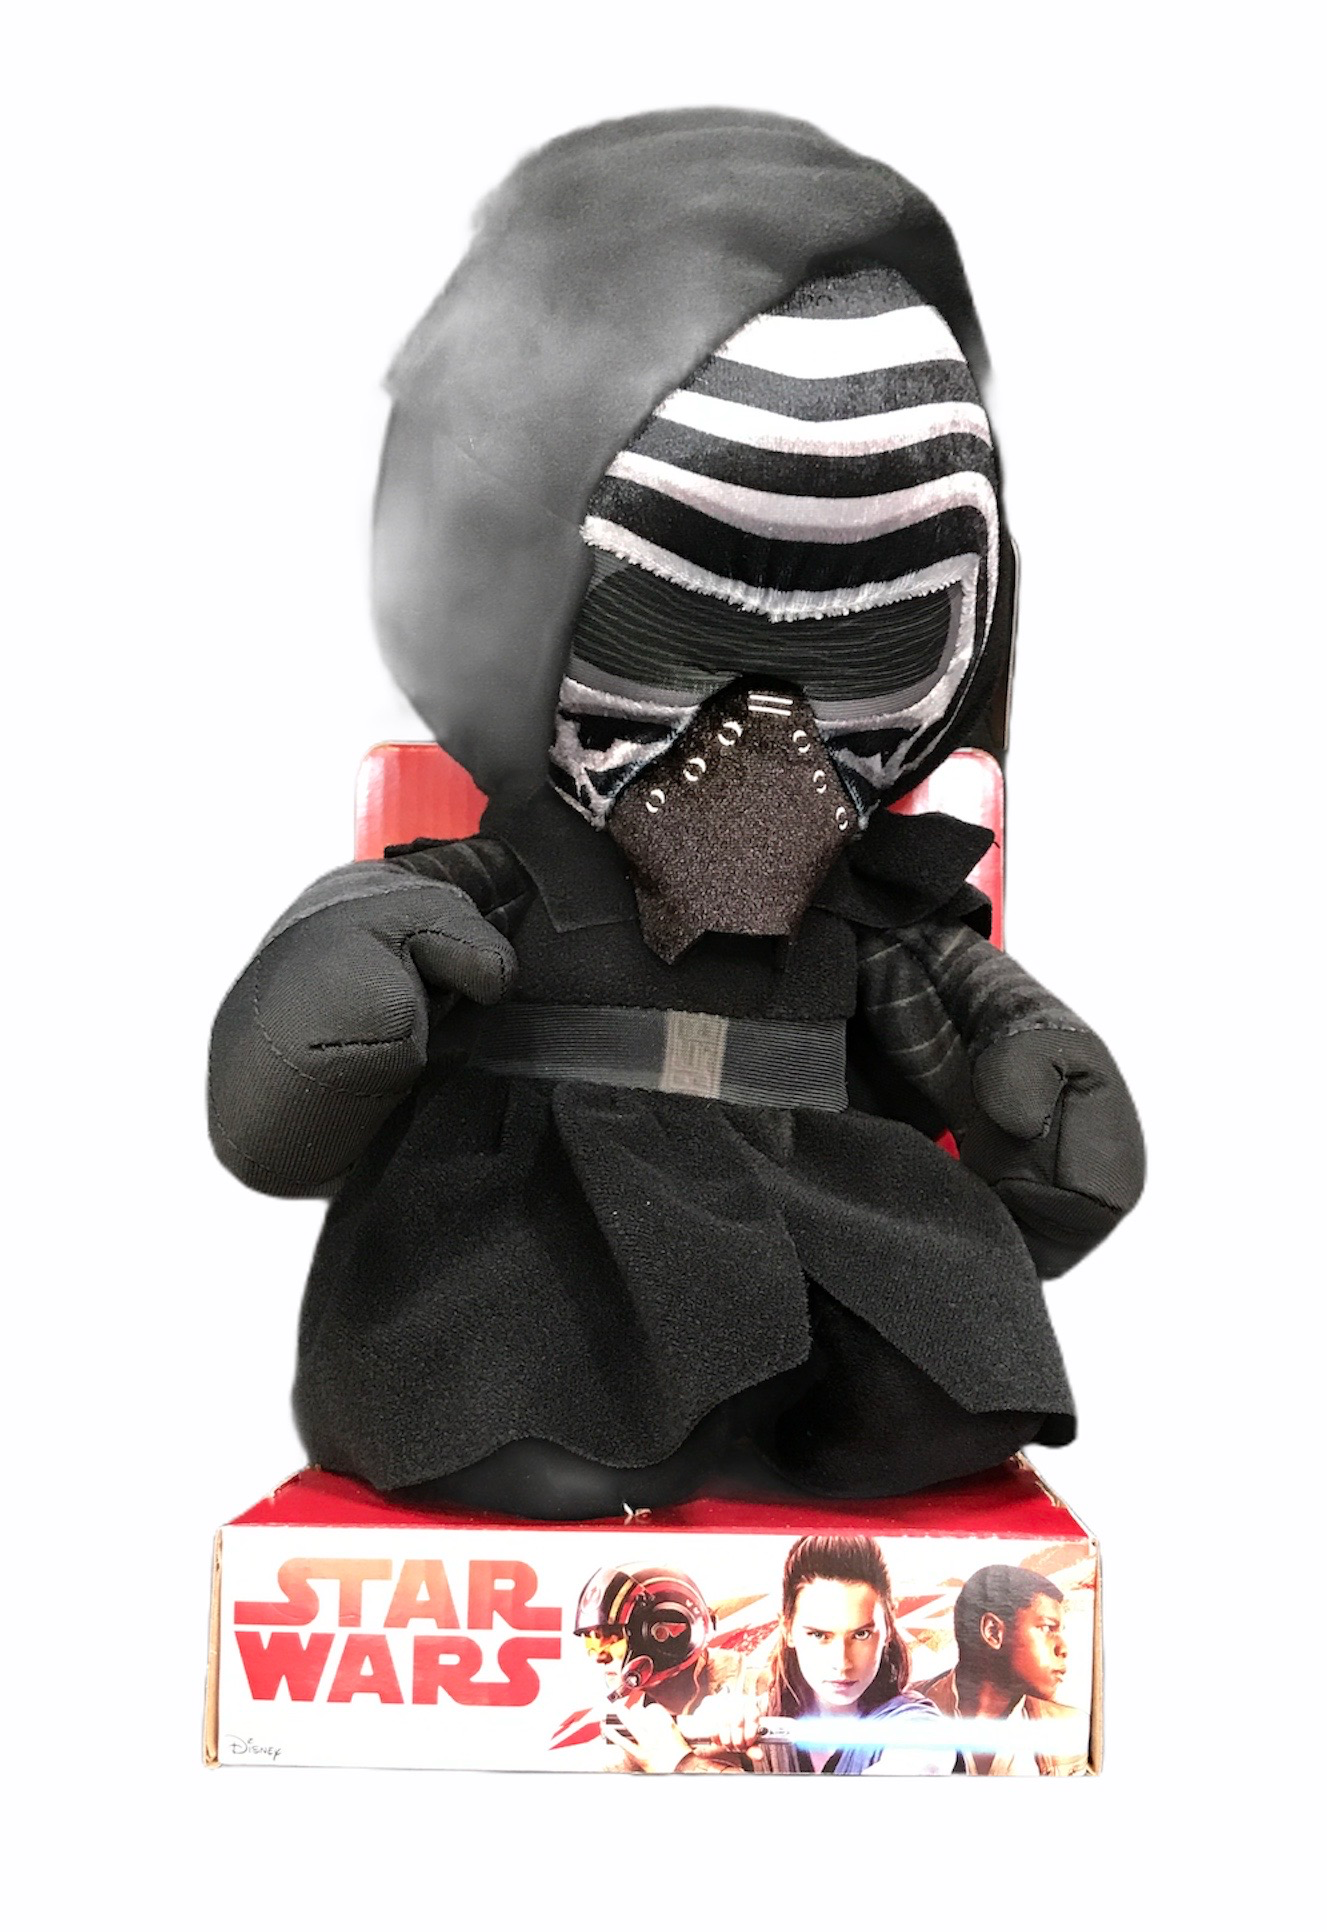 Star Wars Disney Plush - Kylo Reen